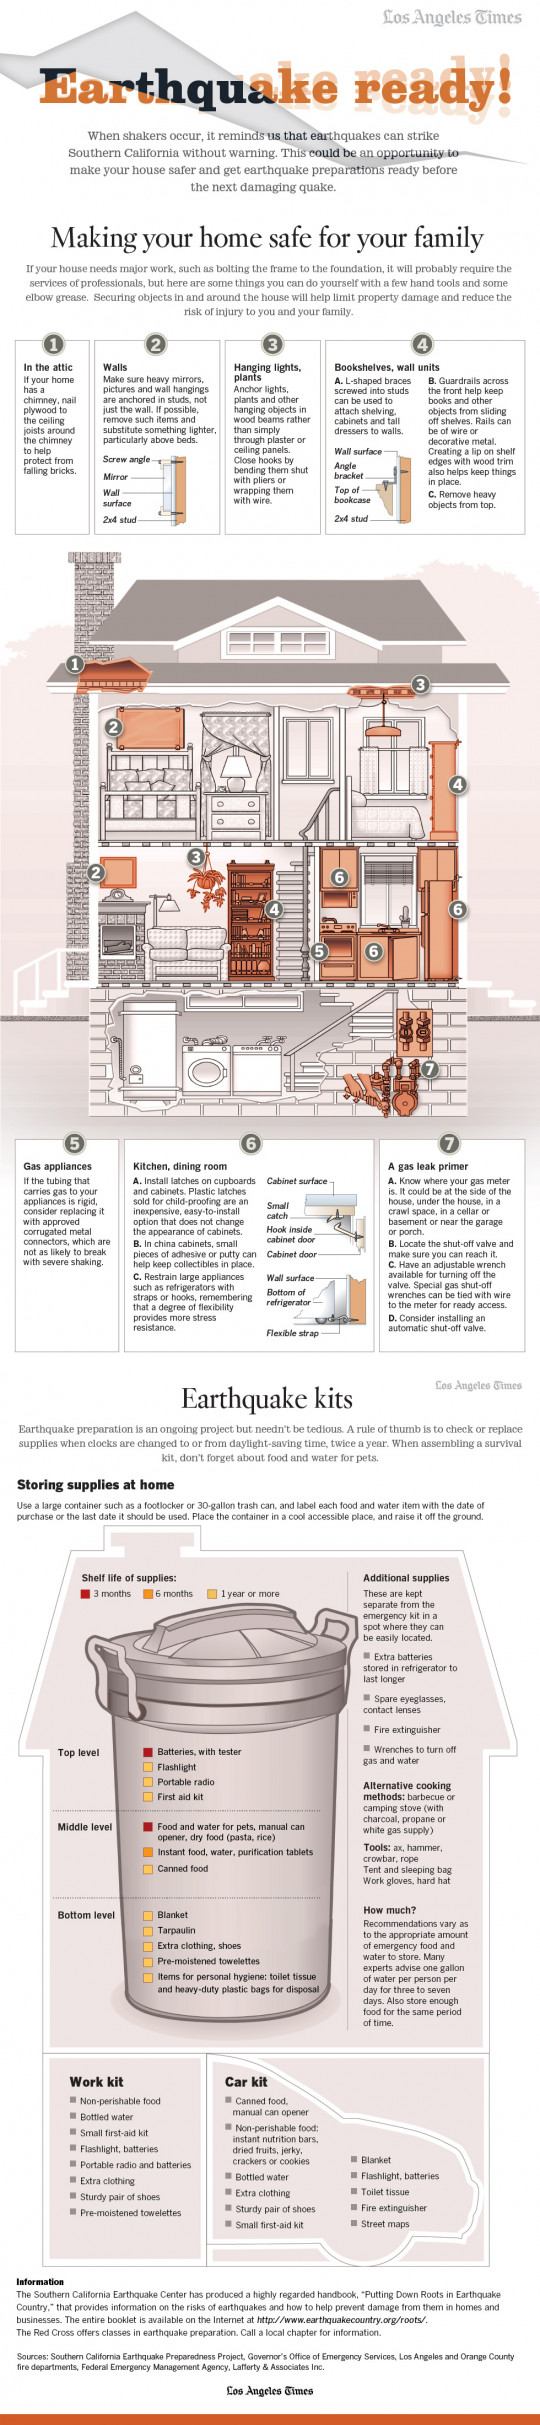 Are you ready for an Earthquake?